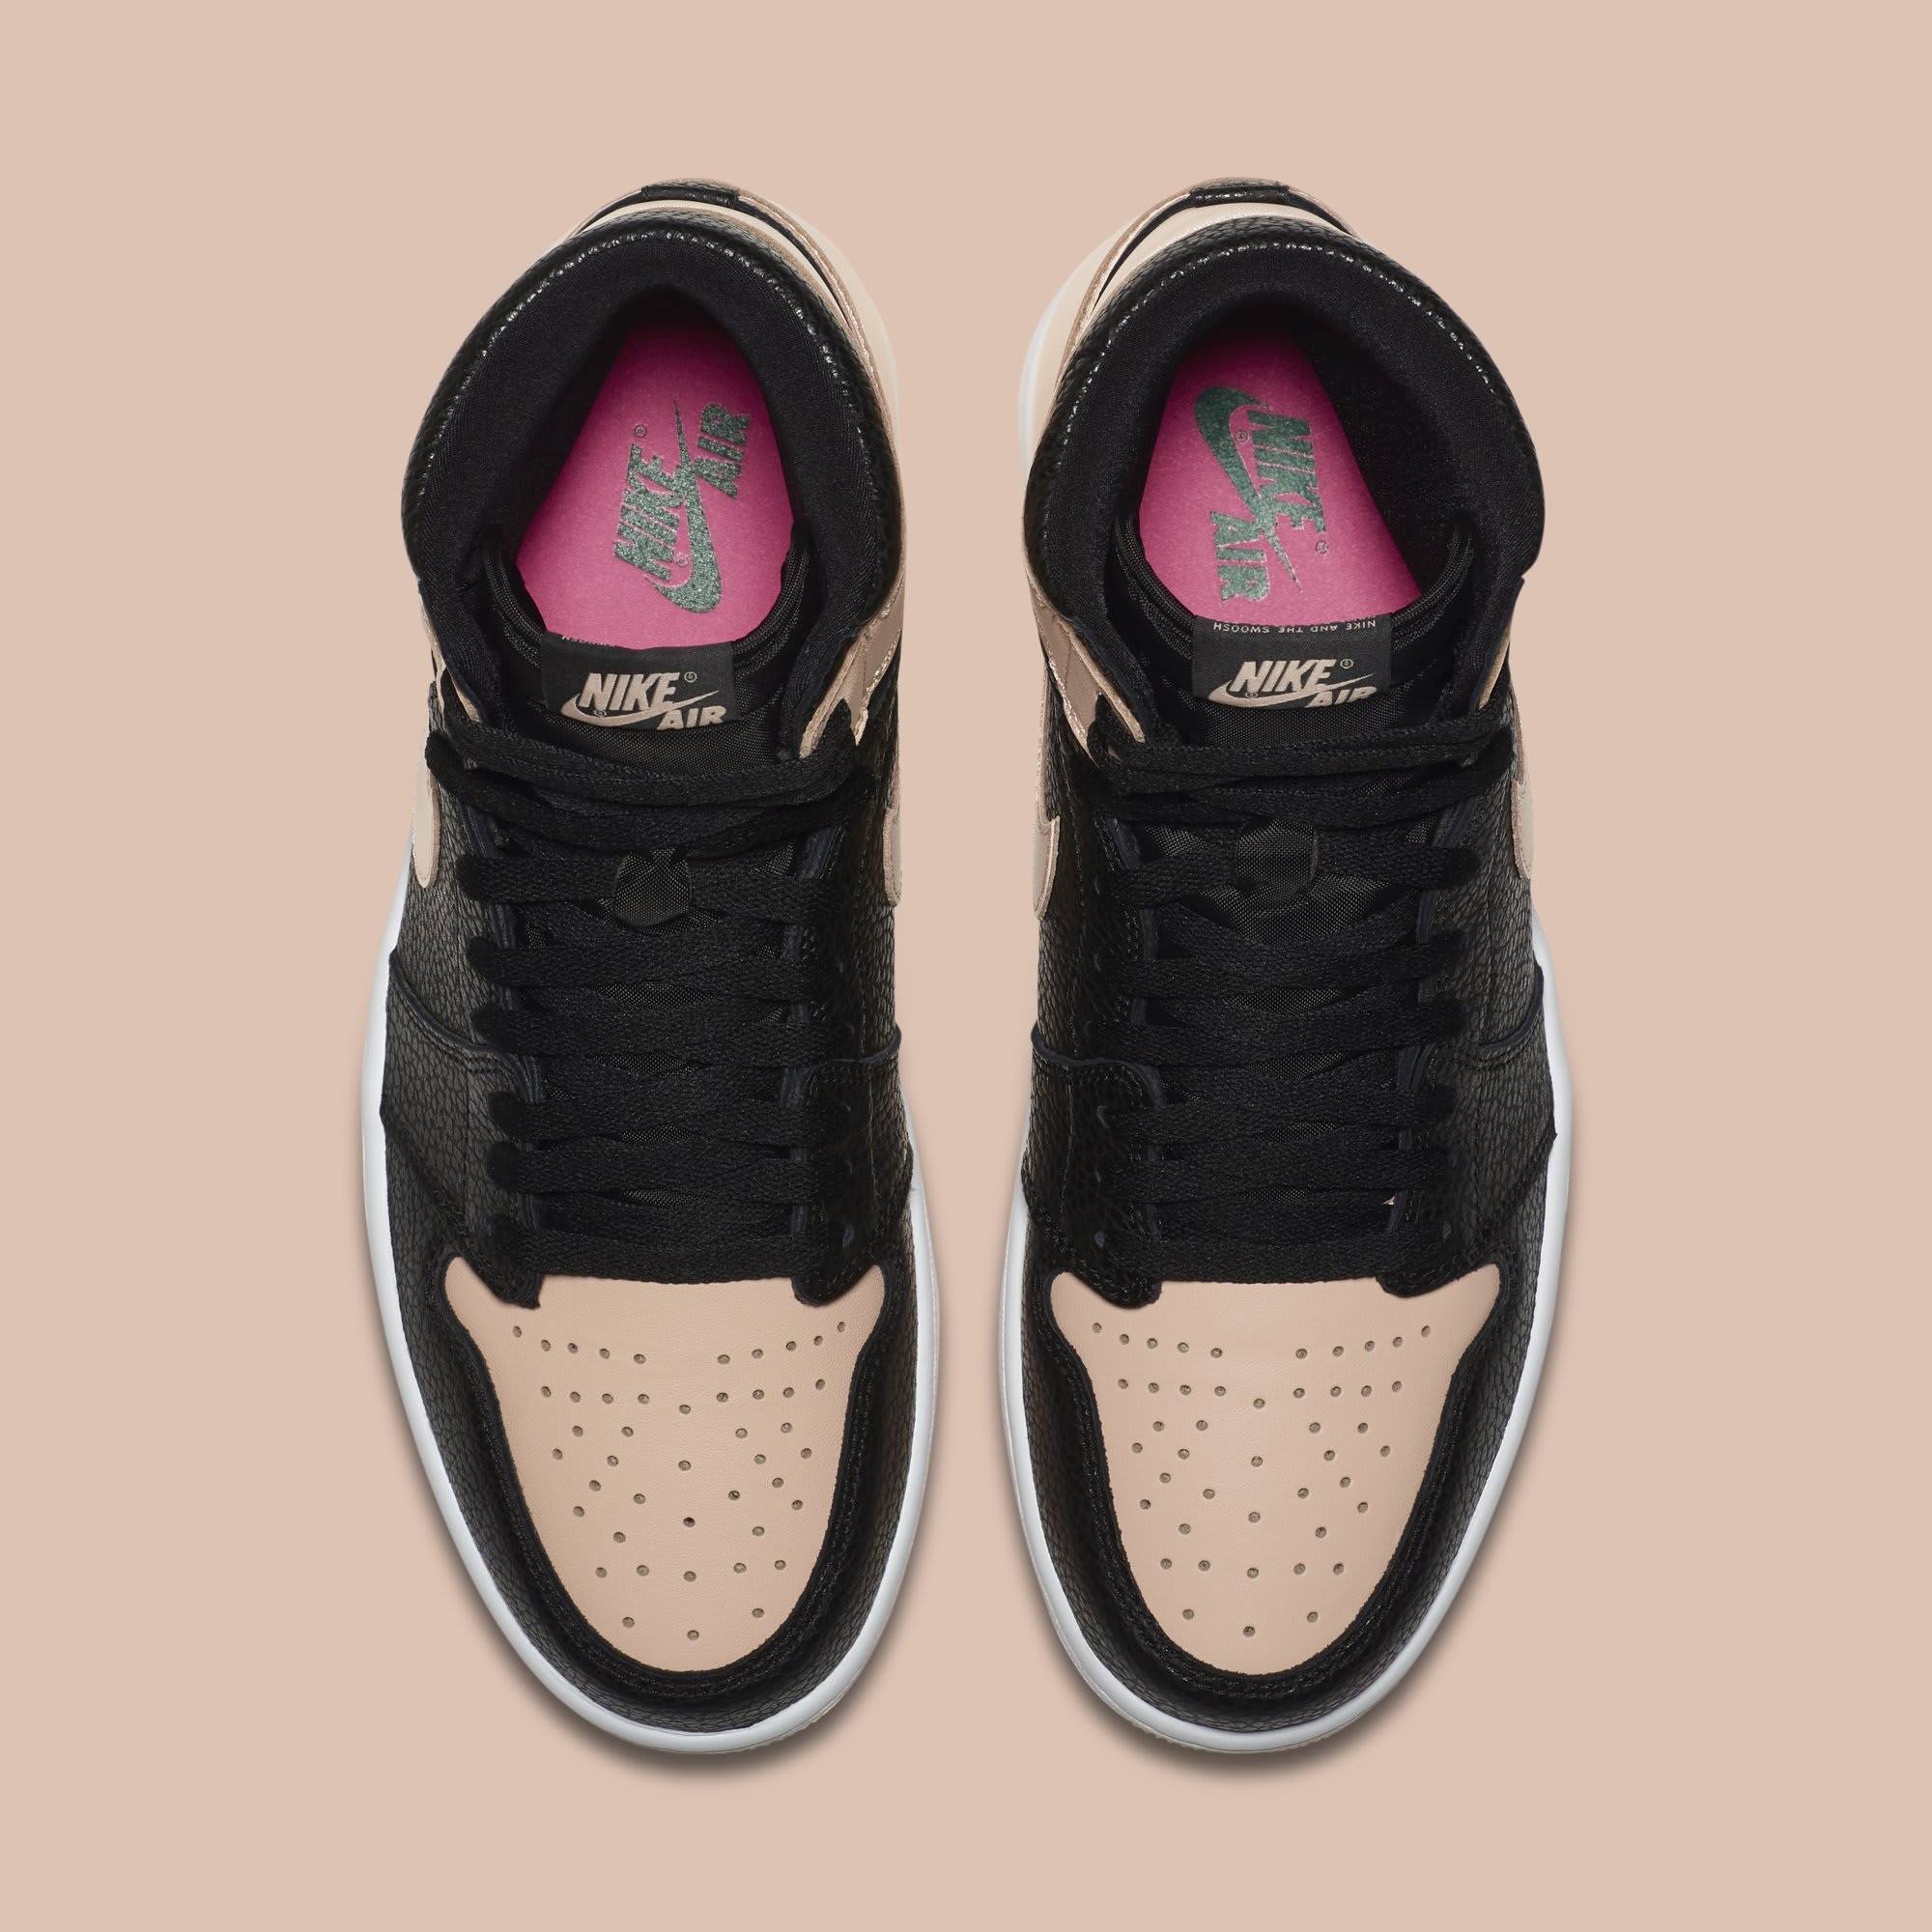 34b29b1de5d Air Jordan 1 Retro High OG 'Crimson Tint' Release Date 555088-081 ...